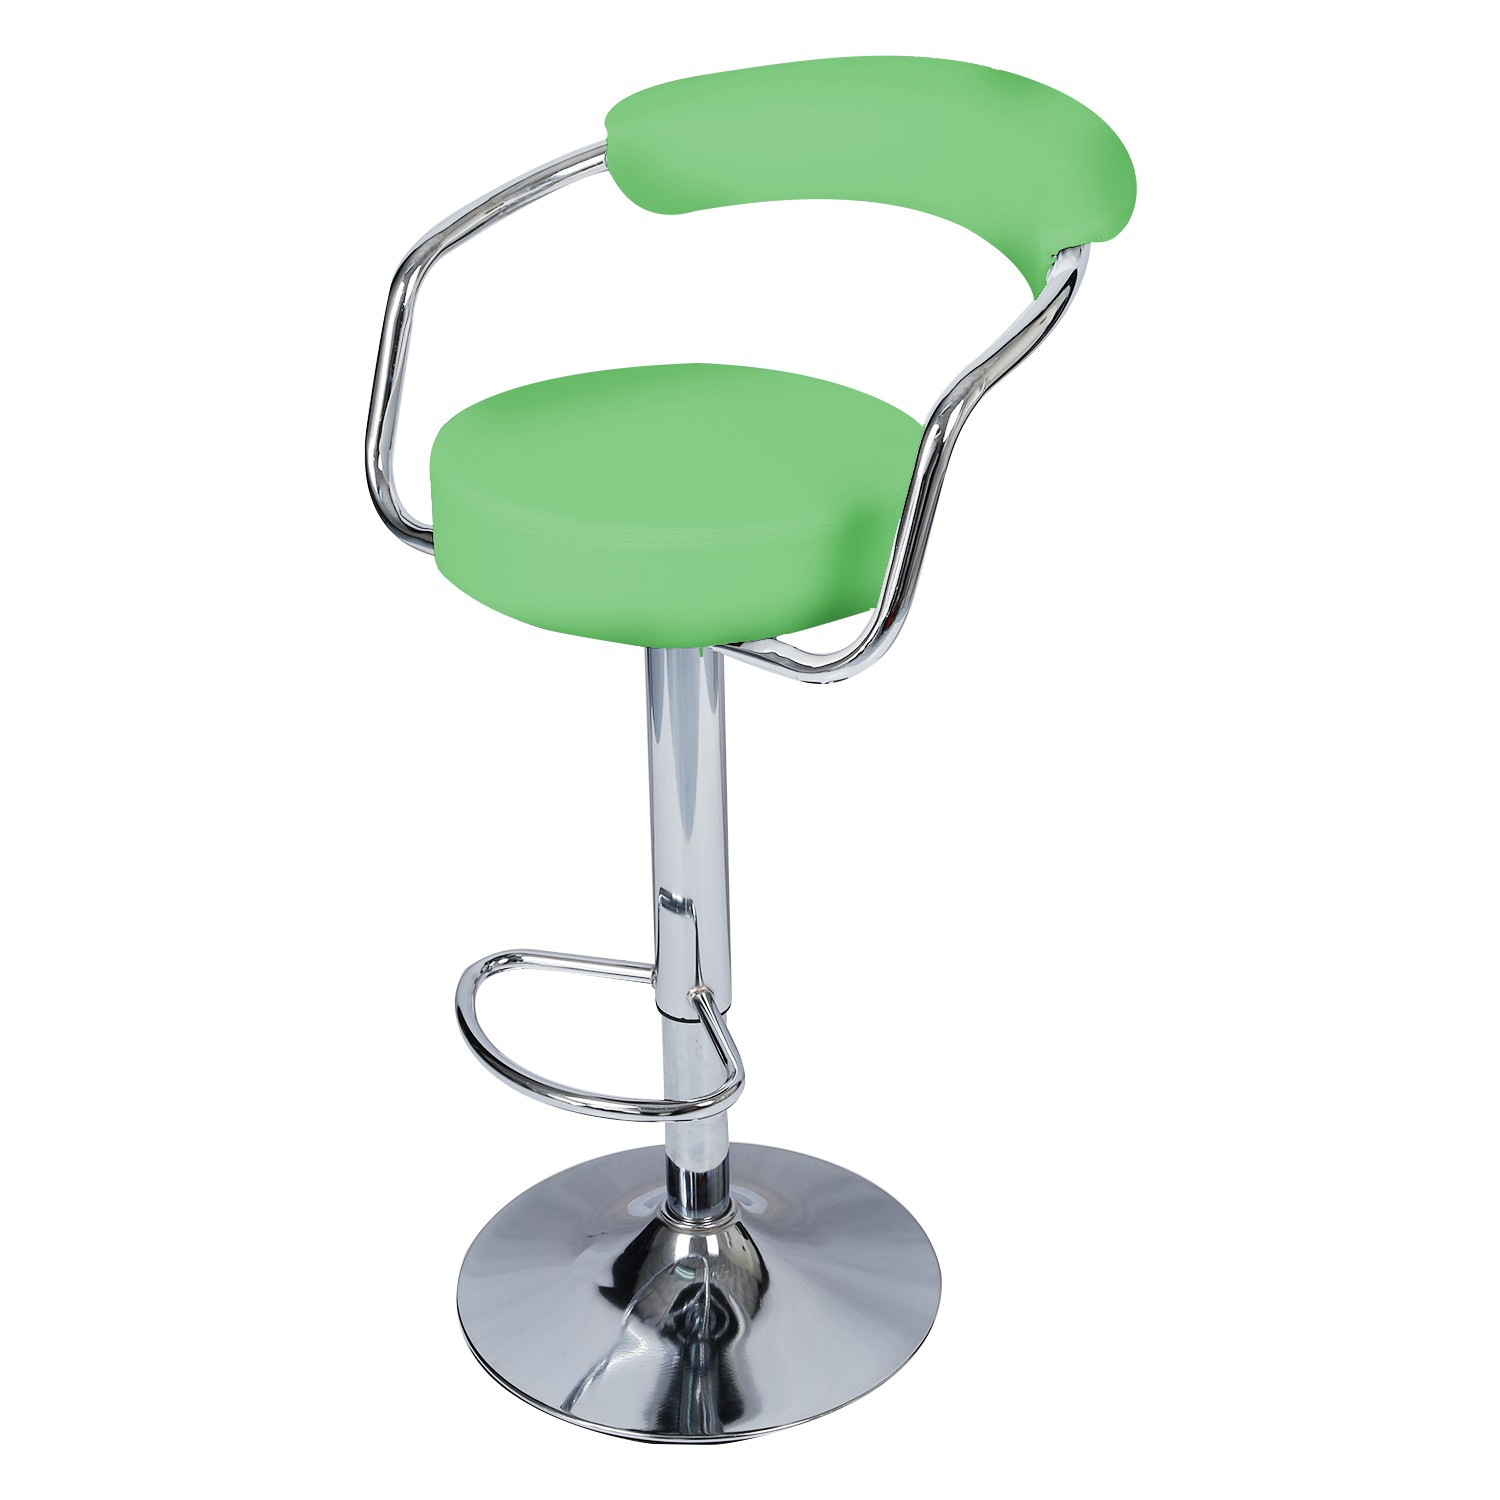 new concept f724d 29db7 NEW green Chrome Swivel Bar Breakfast Stools Chair Leather ...